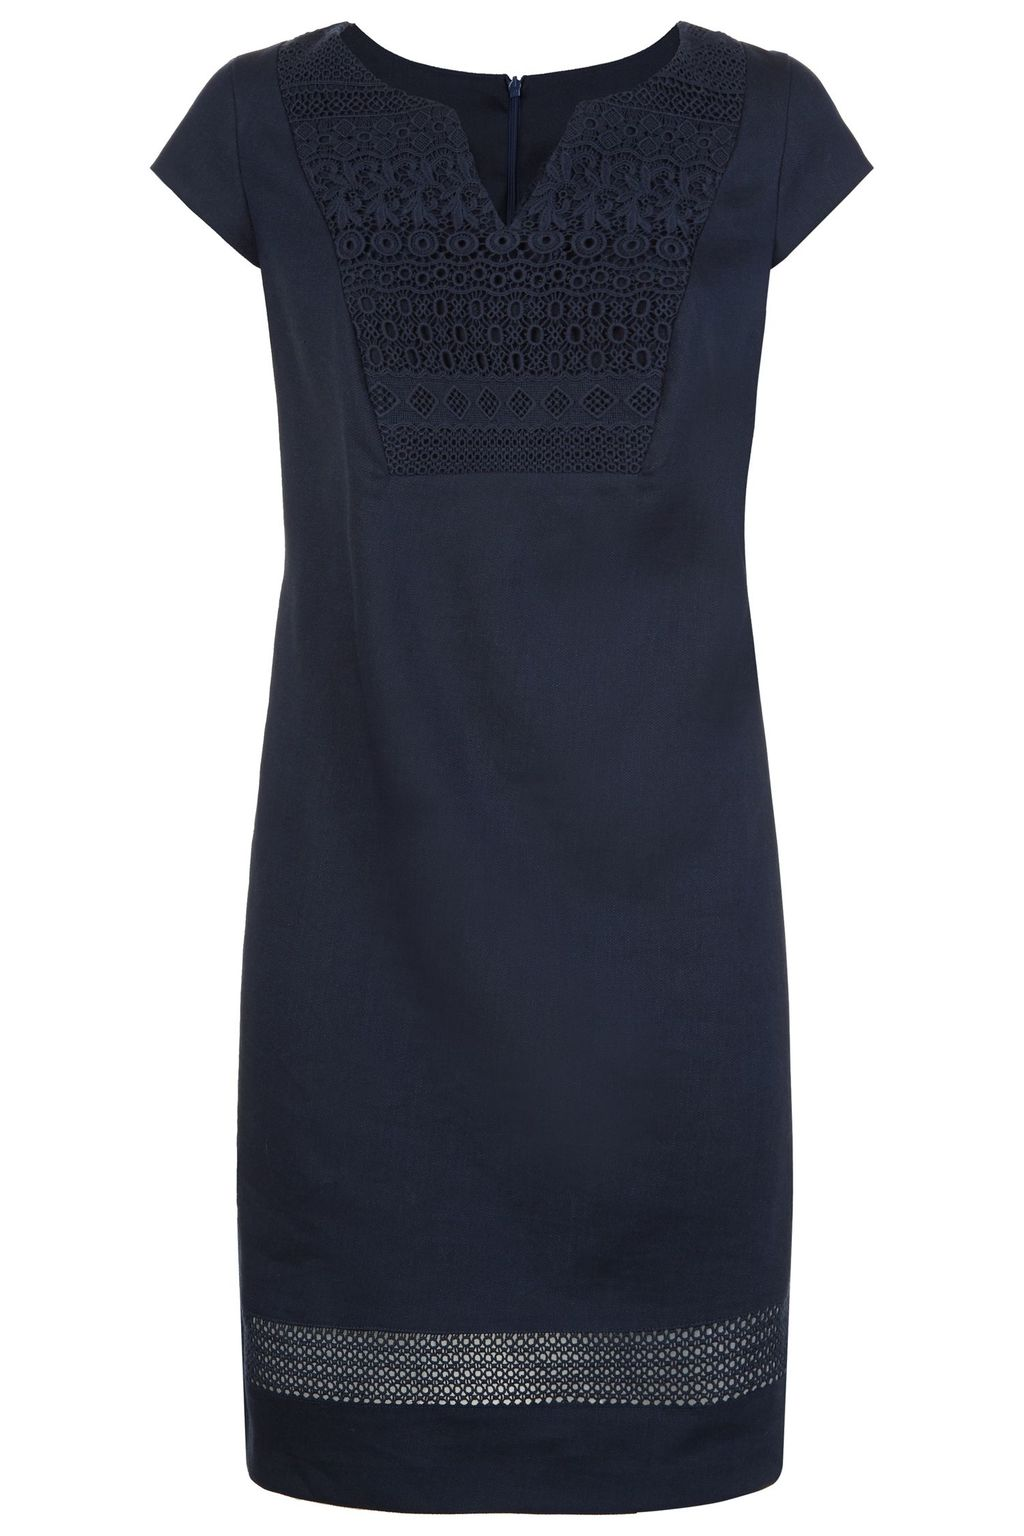 Okeeffe Dress, Navy - style: shift; neckline: v-neck; sleeve style: capped; predominant colour: navy; occasions: casual; length: just above the knee; fit: body skimming; fibres: linen - mix; sleeve length: short sleeve; pattern type: fabric; pattern: patterned/print; texture group: other - light to midweight; embellishment: embroidered; season: s/s 2016; wardrobe: highlight; embellishment location: bust